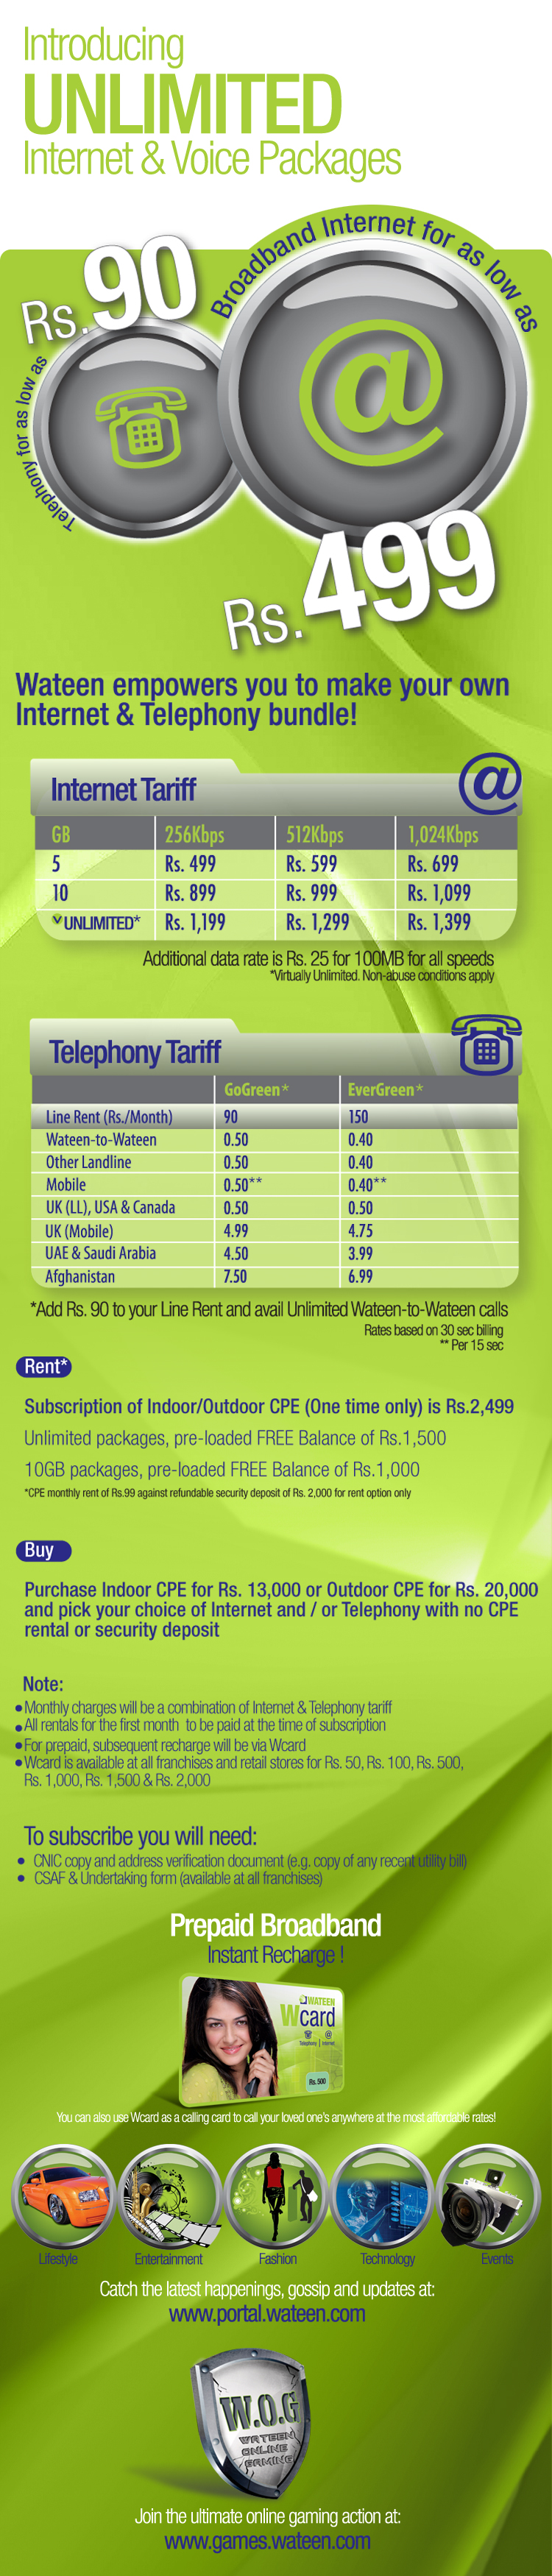 Wateen Unlimited WiMax Broadband Package Introduced!